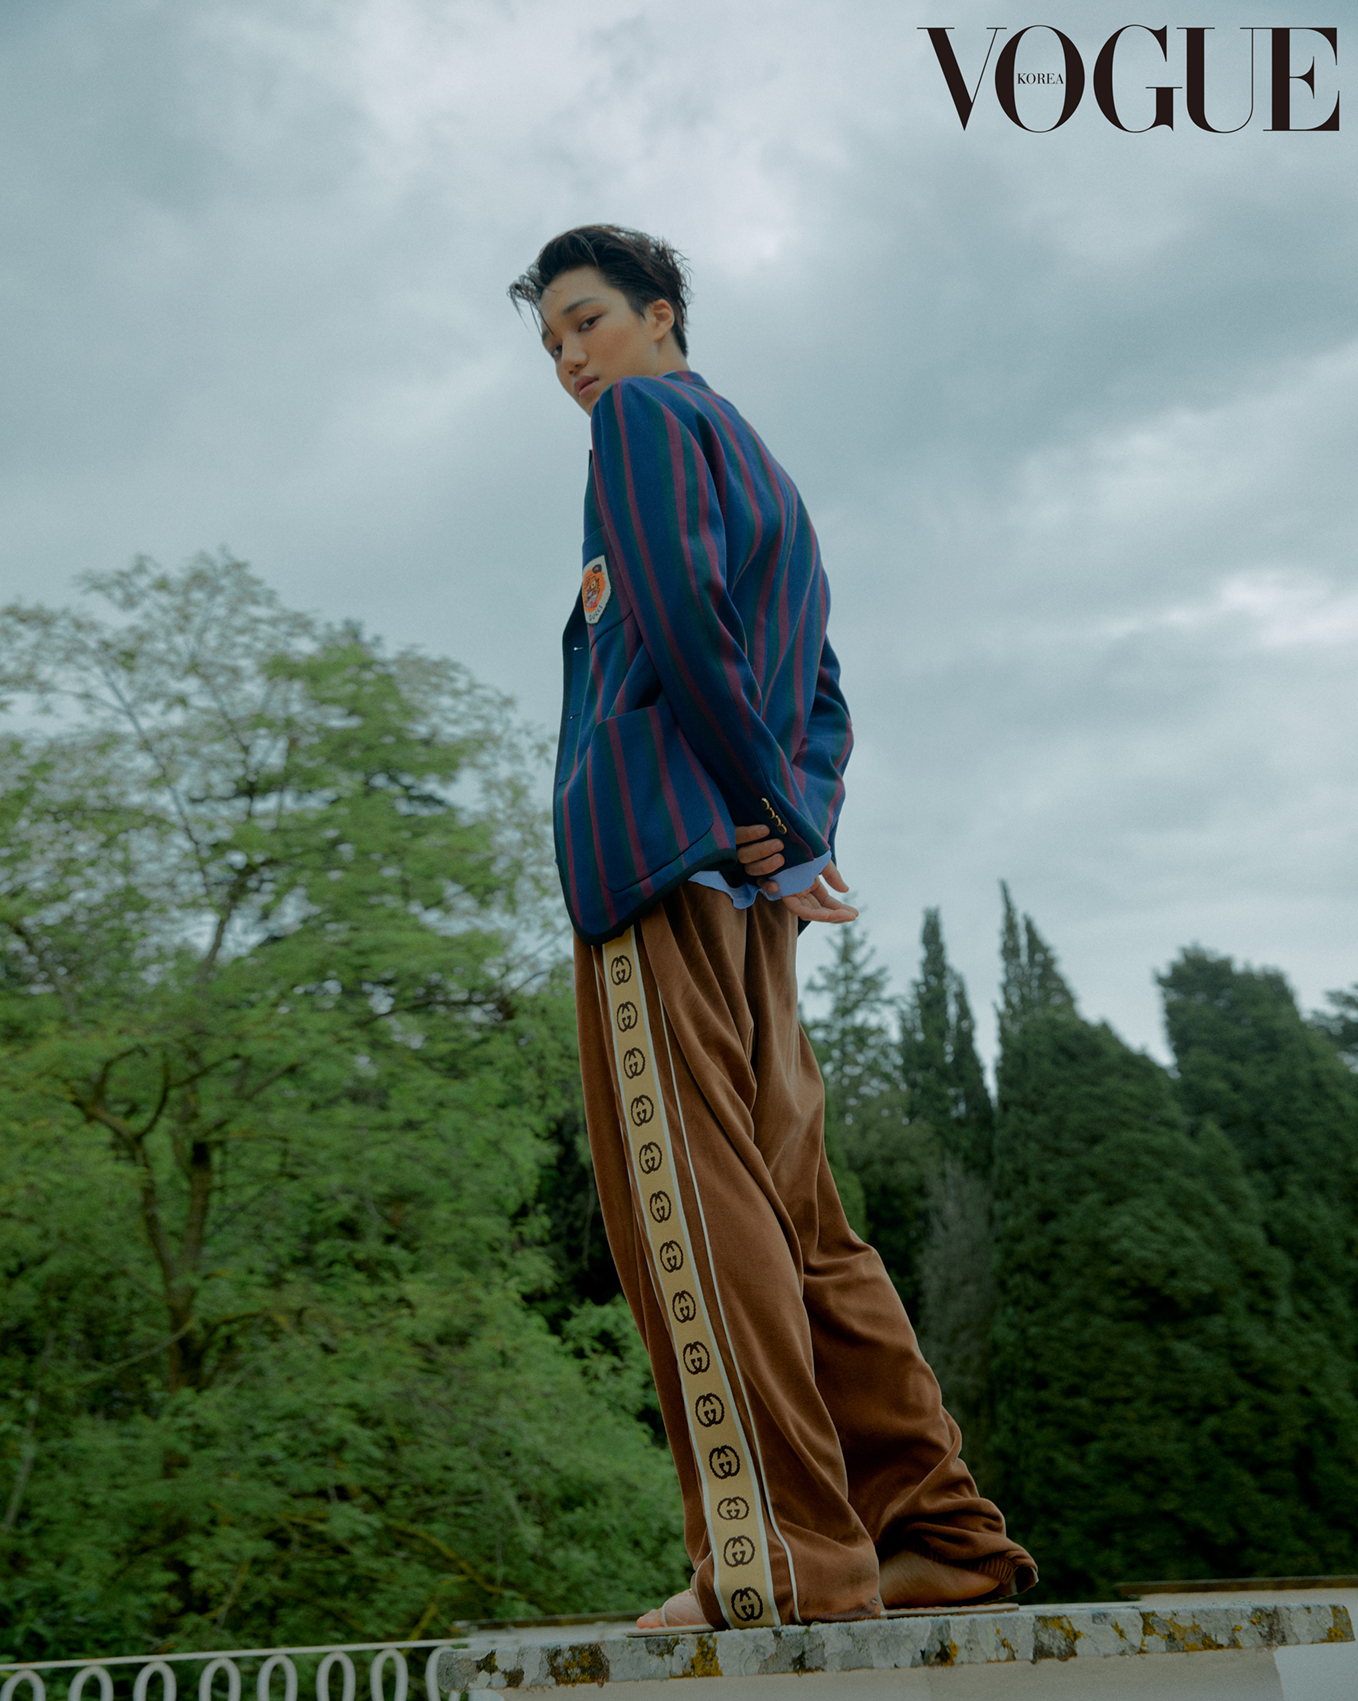 <p>Group EXO Kais luxury photoshoot is public.</p><p>Italy luxury brand Gucci(Gucci)to Kai with a fashion pictorial for Vogue Korea the 7th issue through public.</p><p>Public photoshoot in Kai exclusive atmosphere concept glutinous rice cake like digest. Especially the variety of styles of your own personality style fully digested attracted attention.</p><p>Meanwhile Kai is 21, first broadcast that KBS2 arts program to train car only asthrough the bag to find it.</p><p>Photo L Gucci</p>